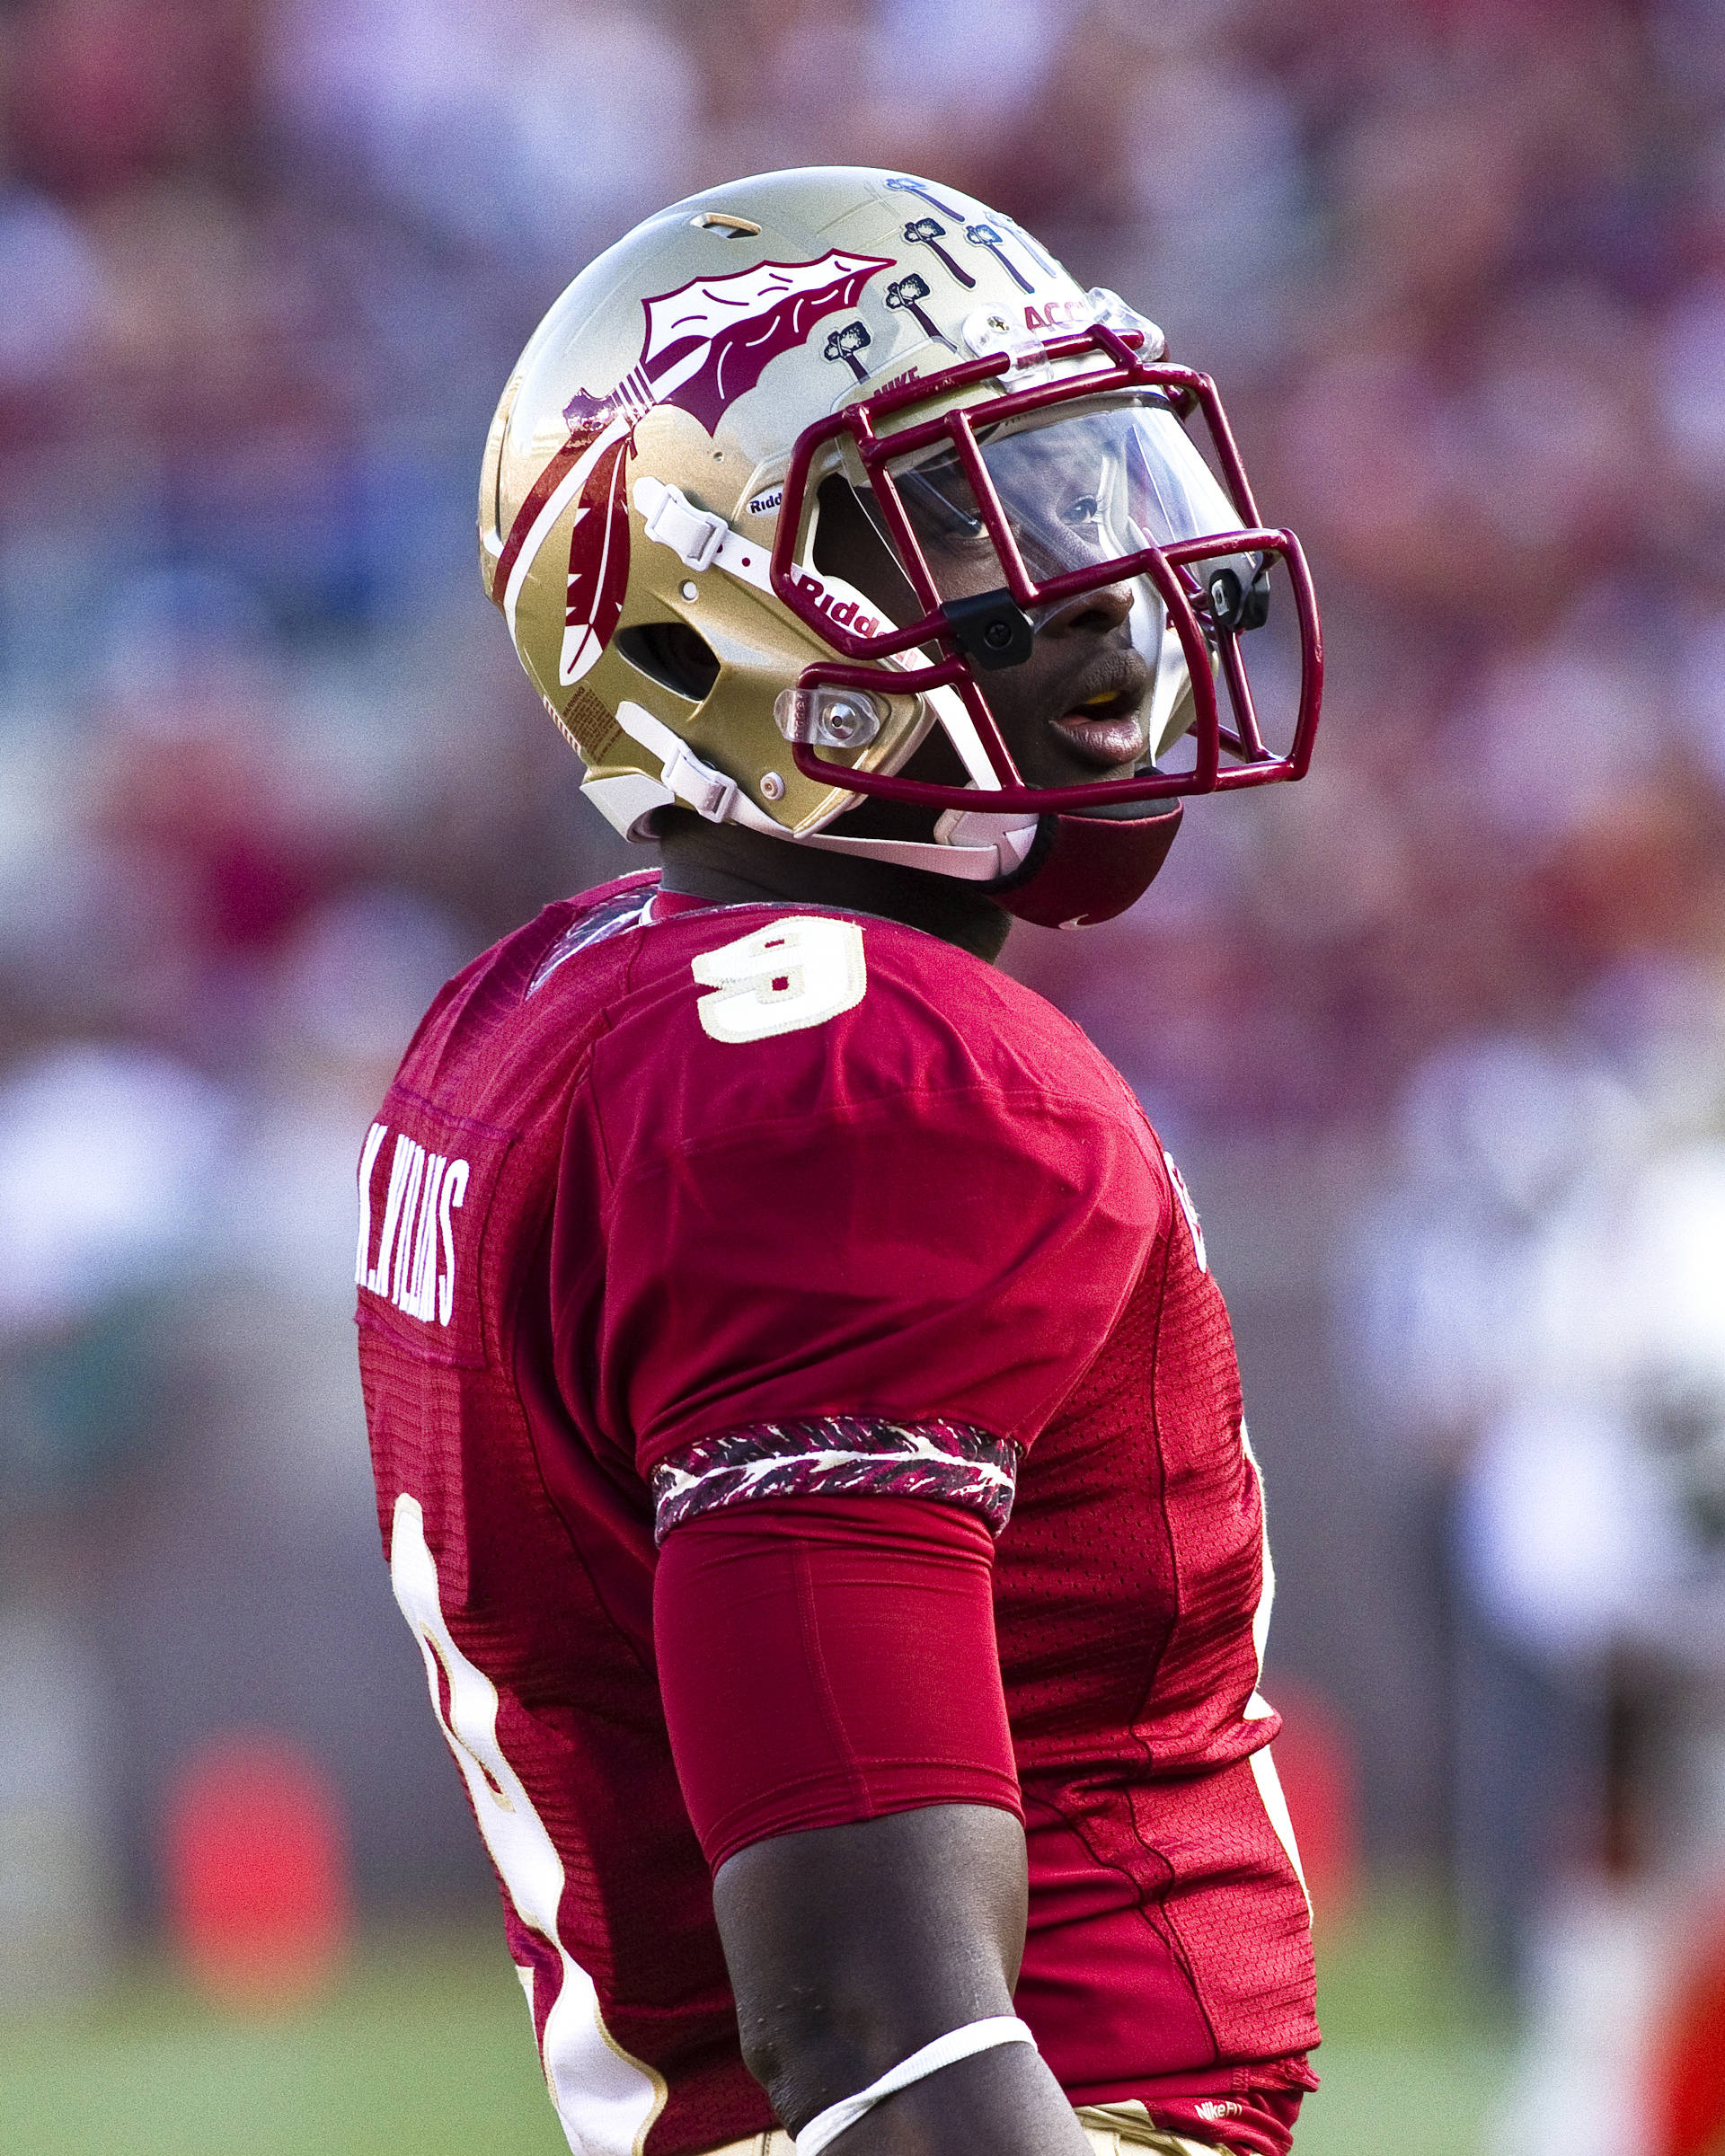 Karlos Williams (9), FSU vs Miami, 11/12/2011